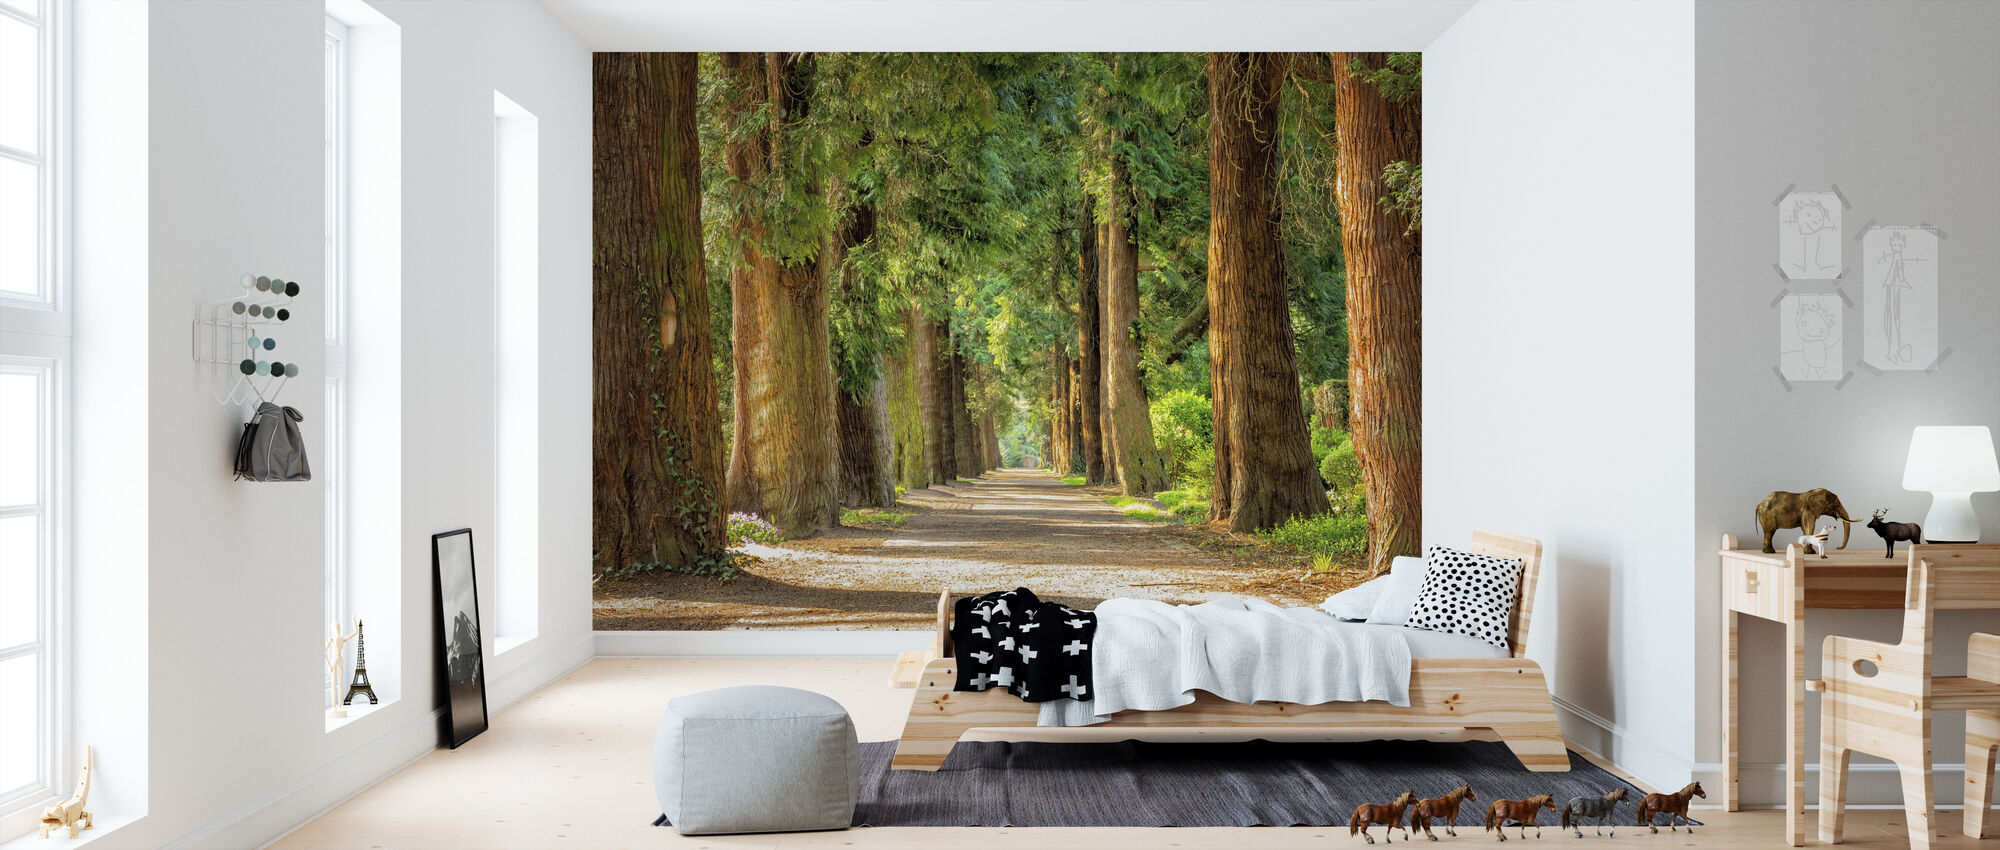 Pathway Between Trees - Wallpaper - Kids Room